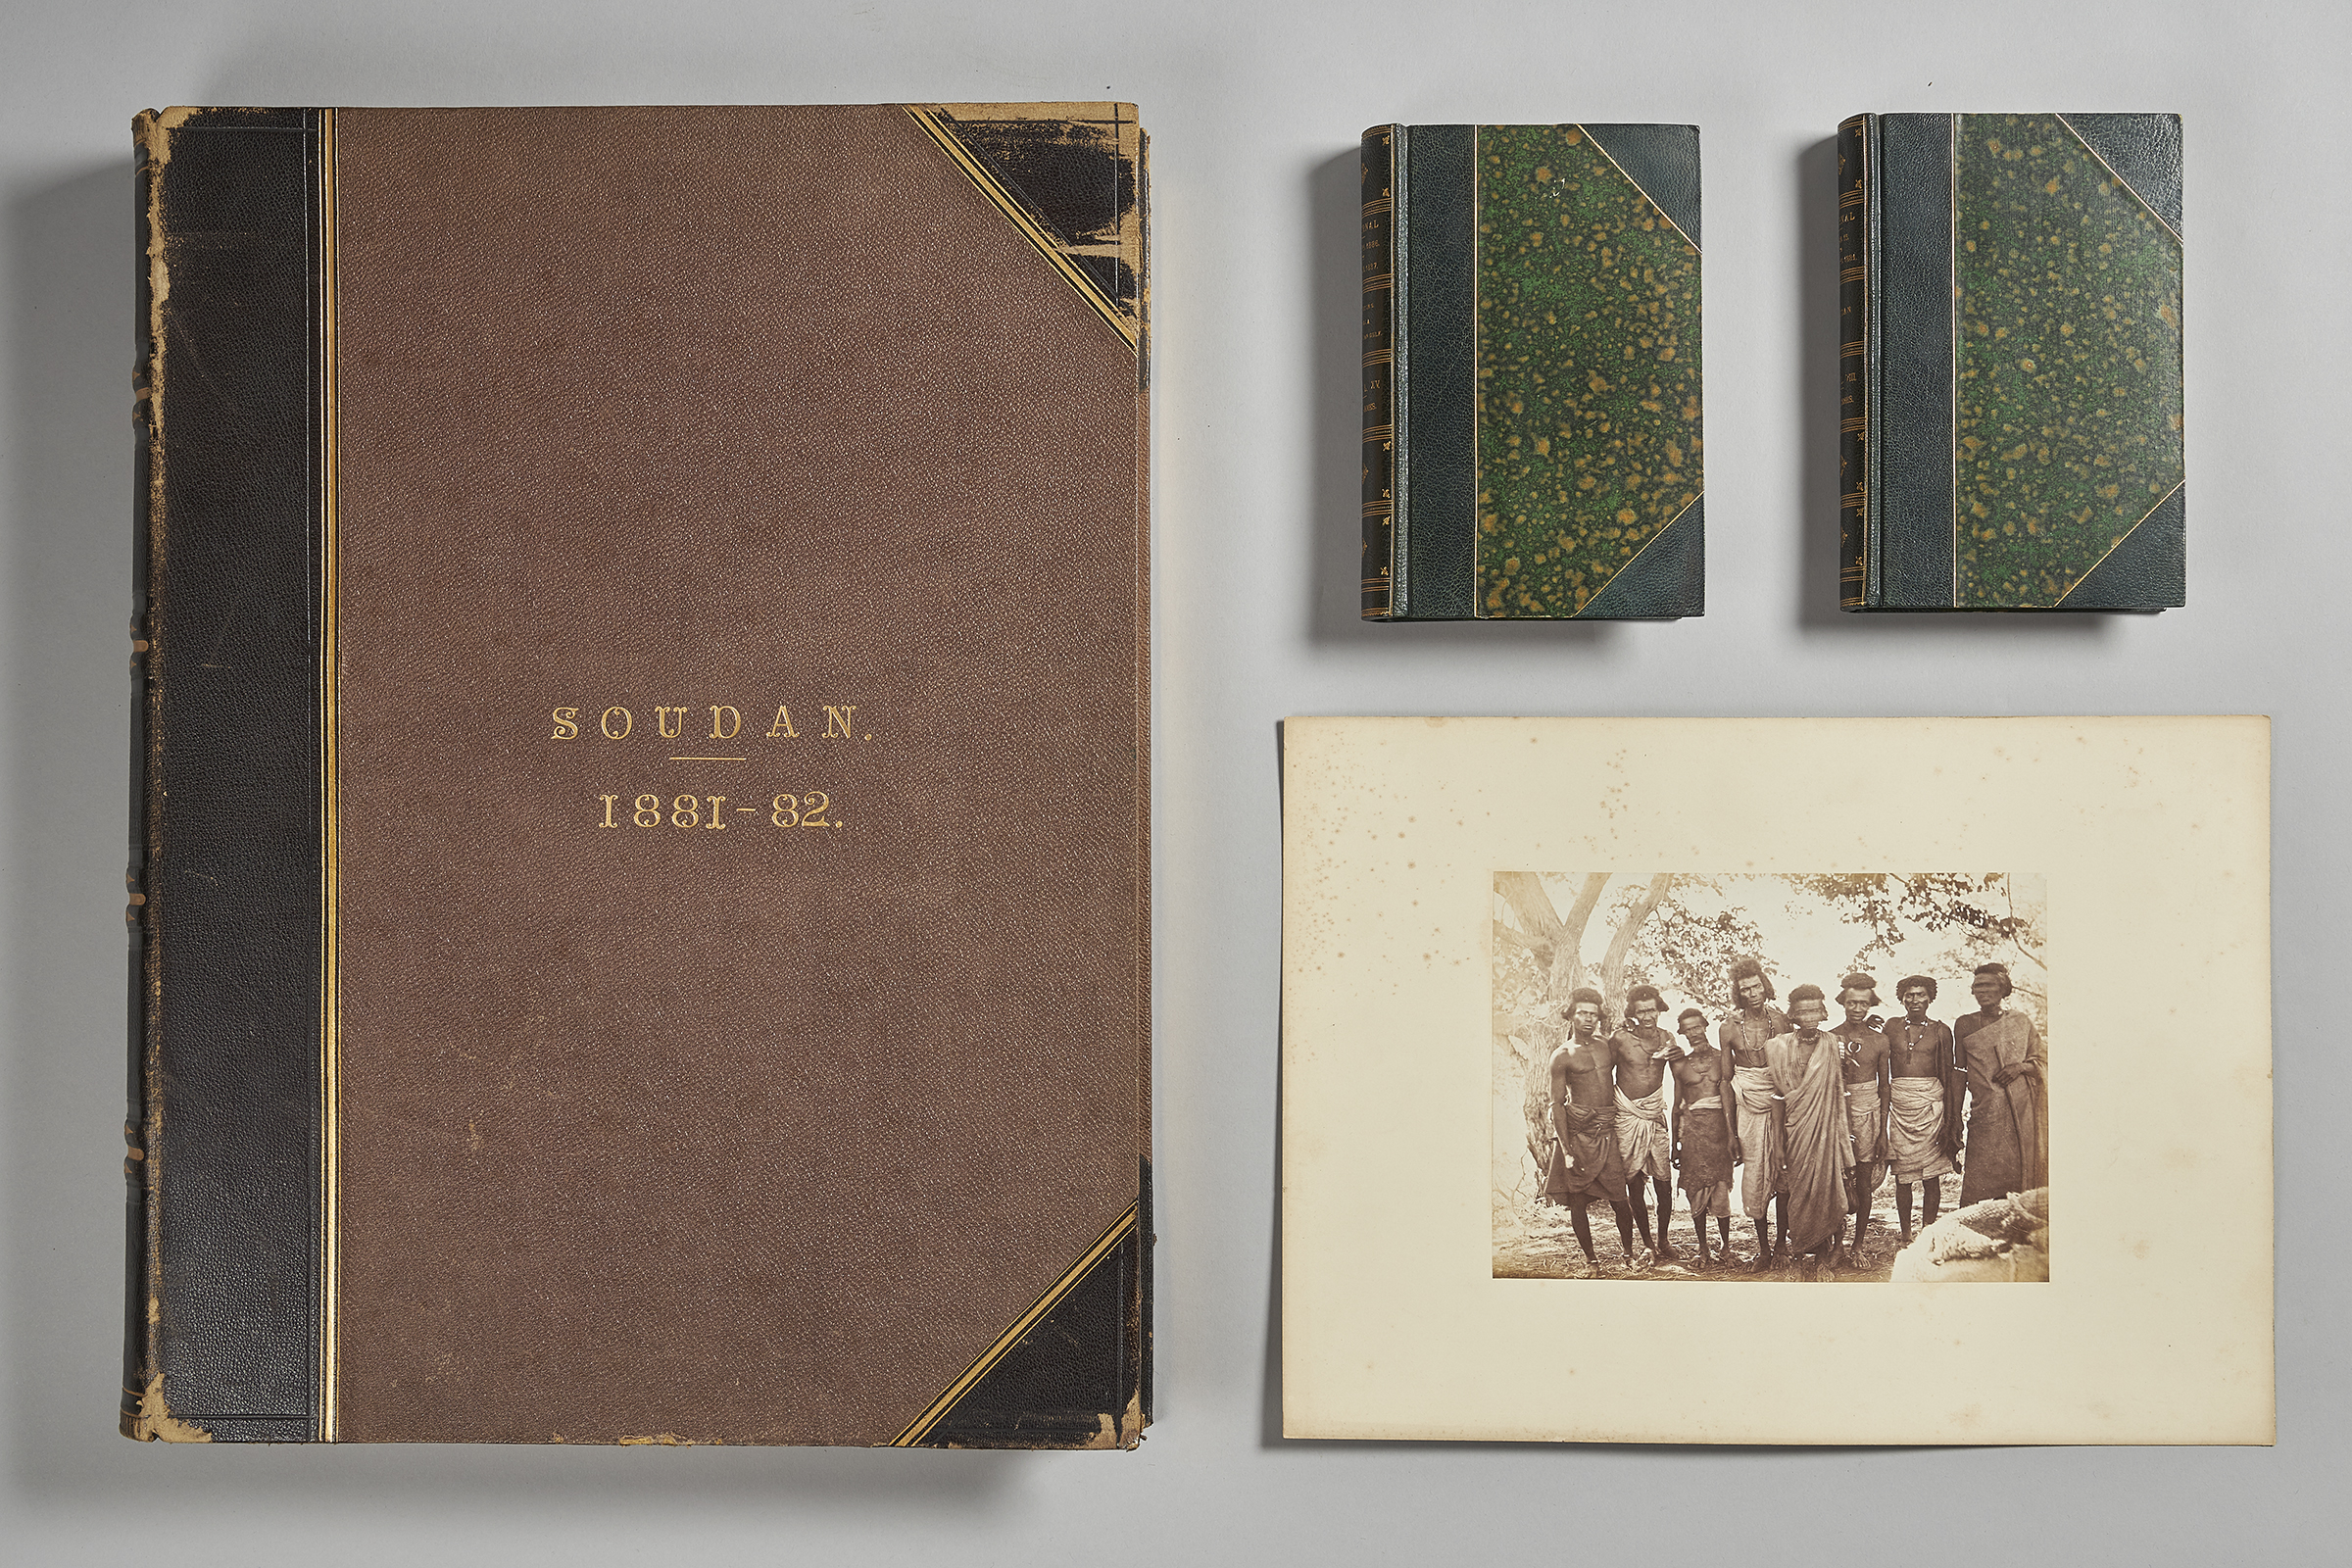 Frank and William James expedition material from the West Dean College archive